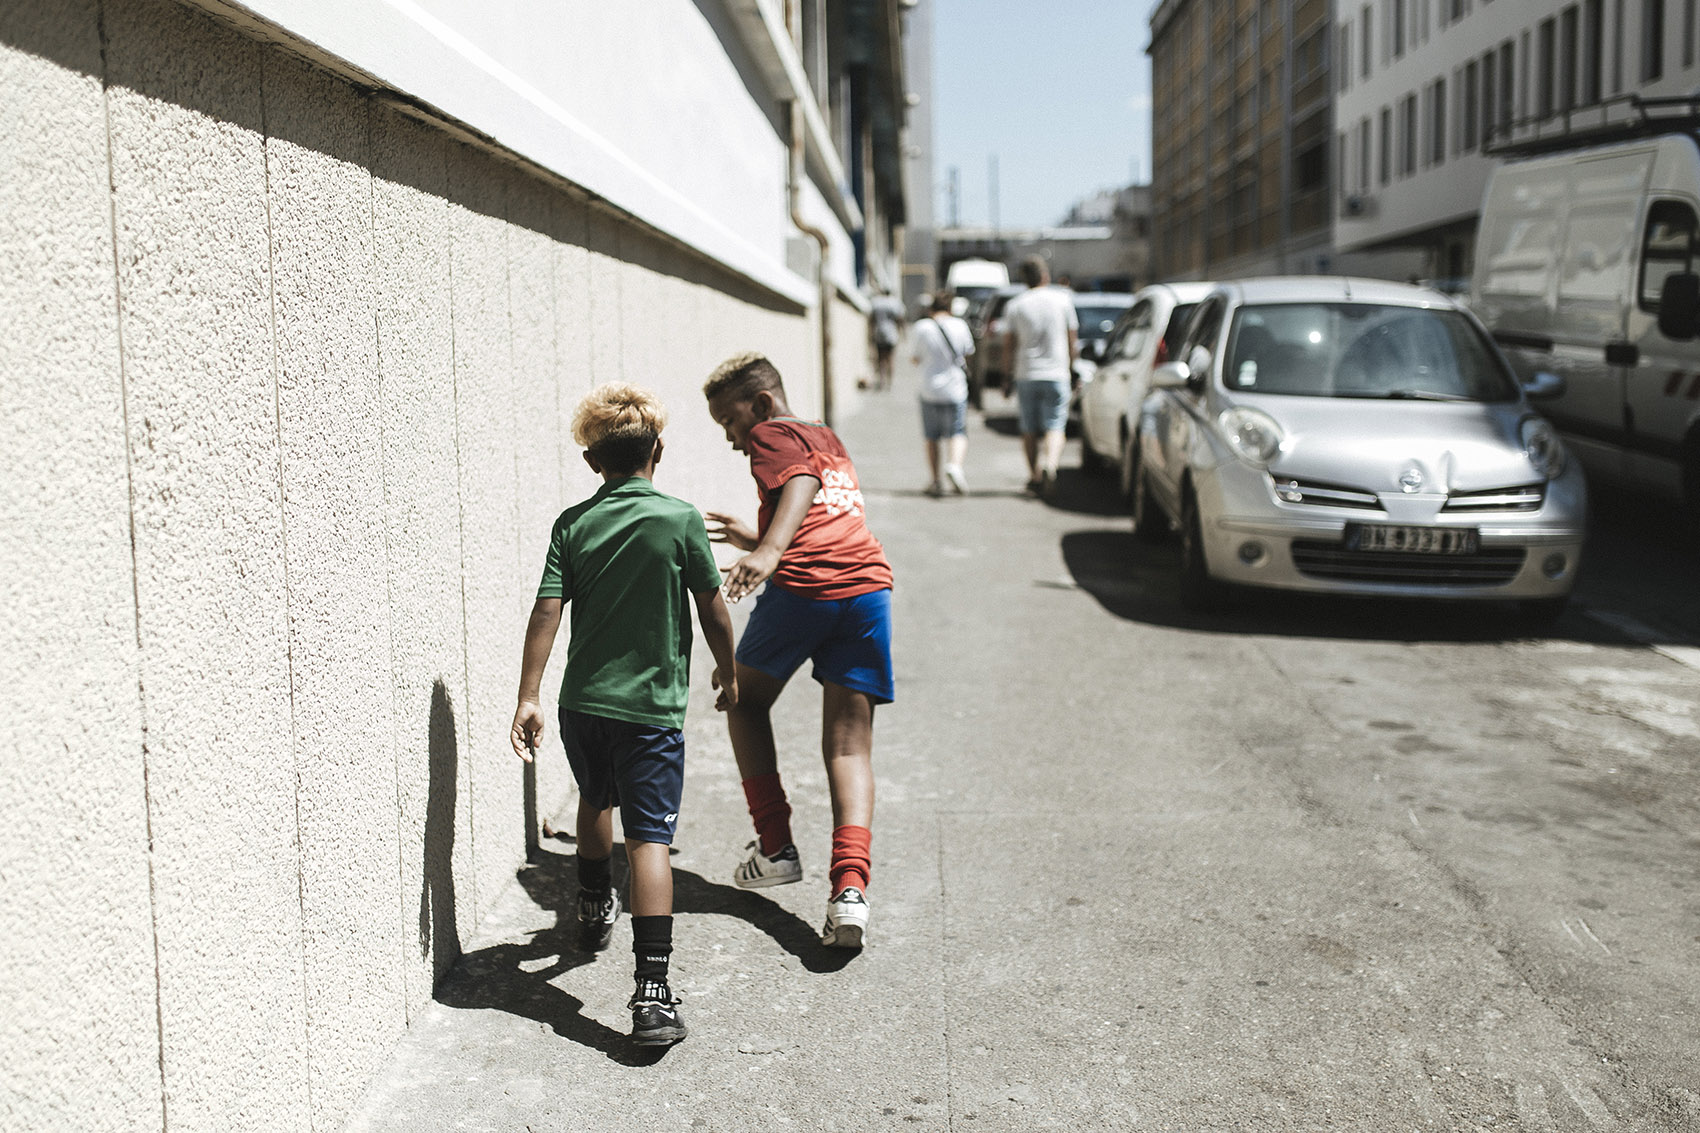 Children play in the streets of the Belle de Mai district.